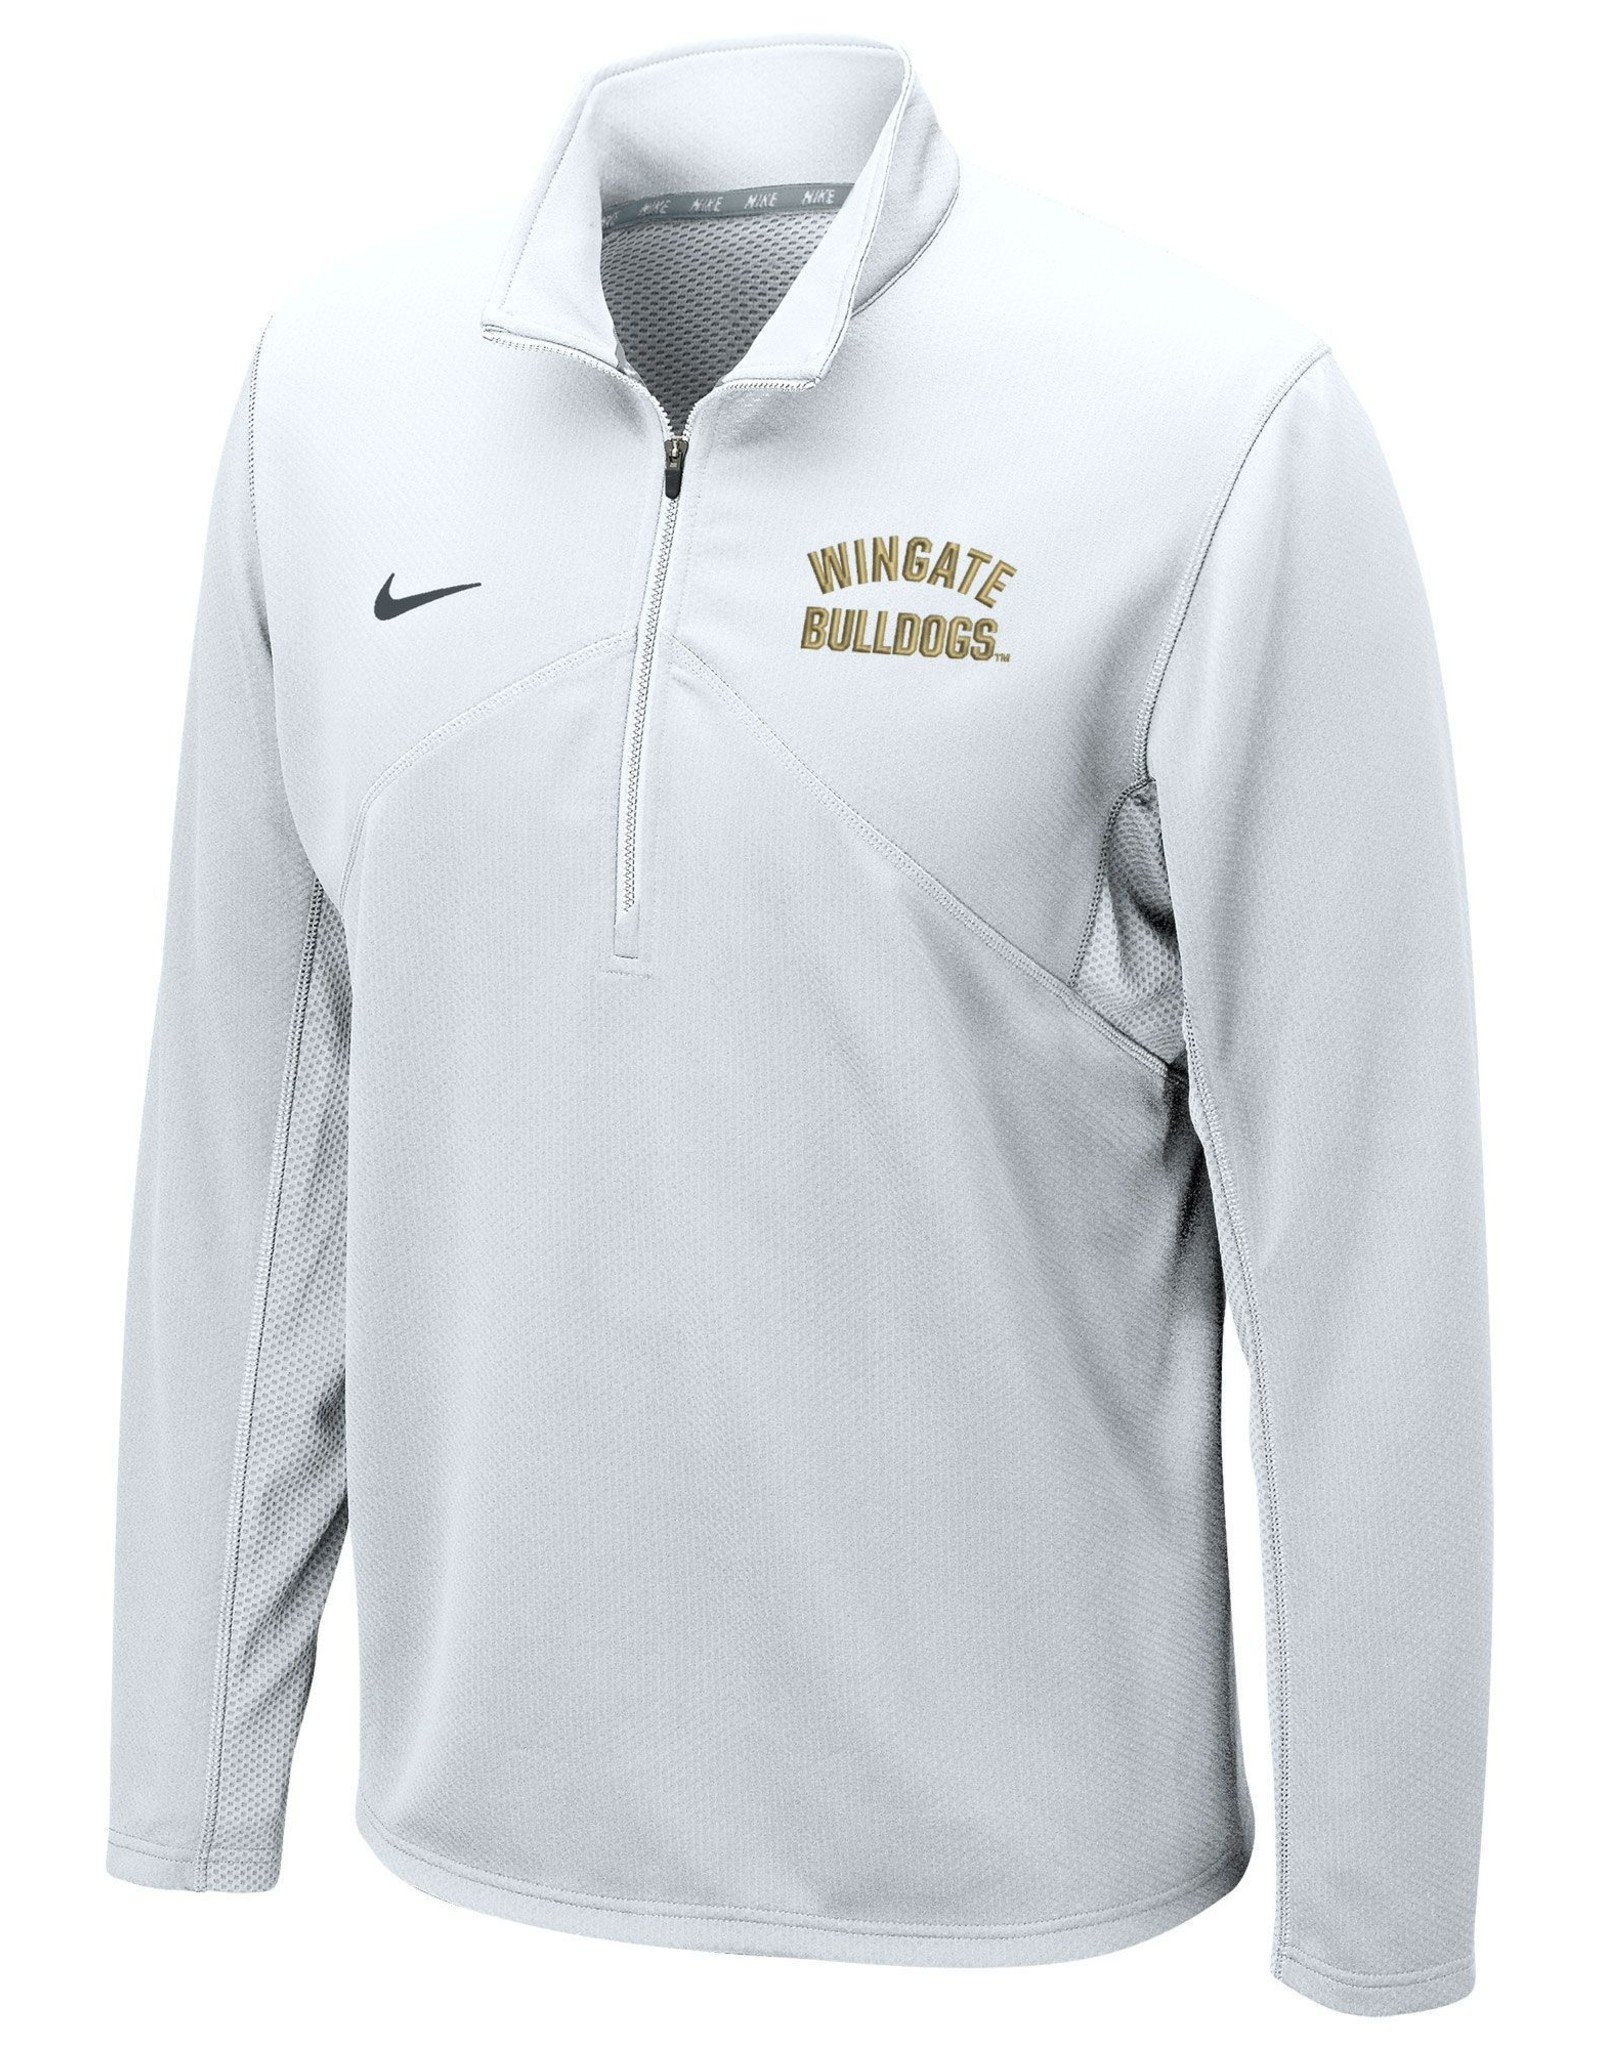 Nike White Wingate Bulldogs Embroidered Drifit Training 1/4 Zip